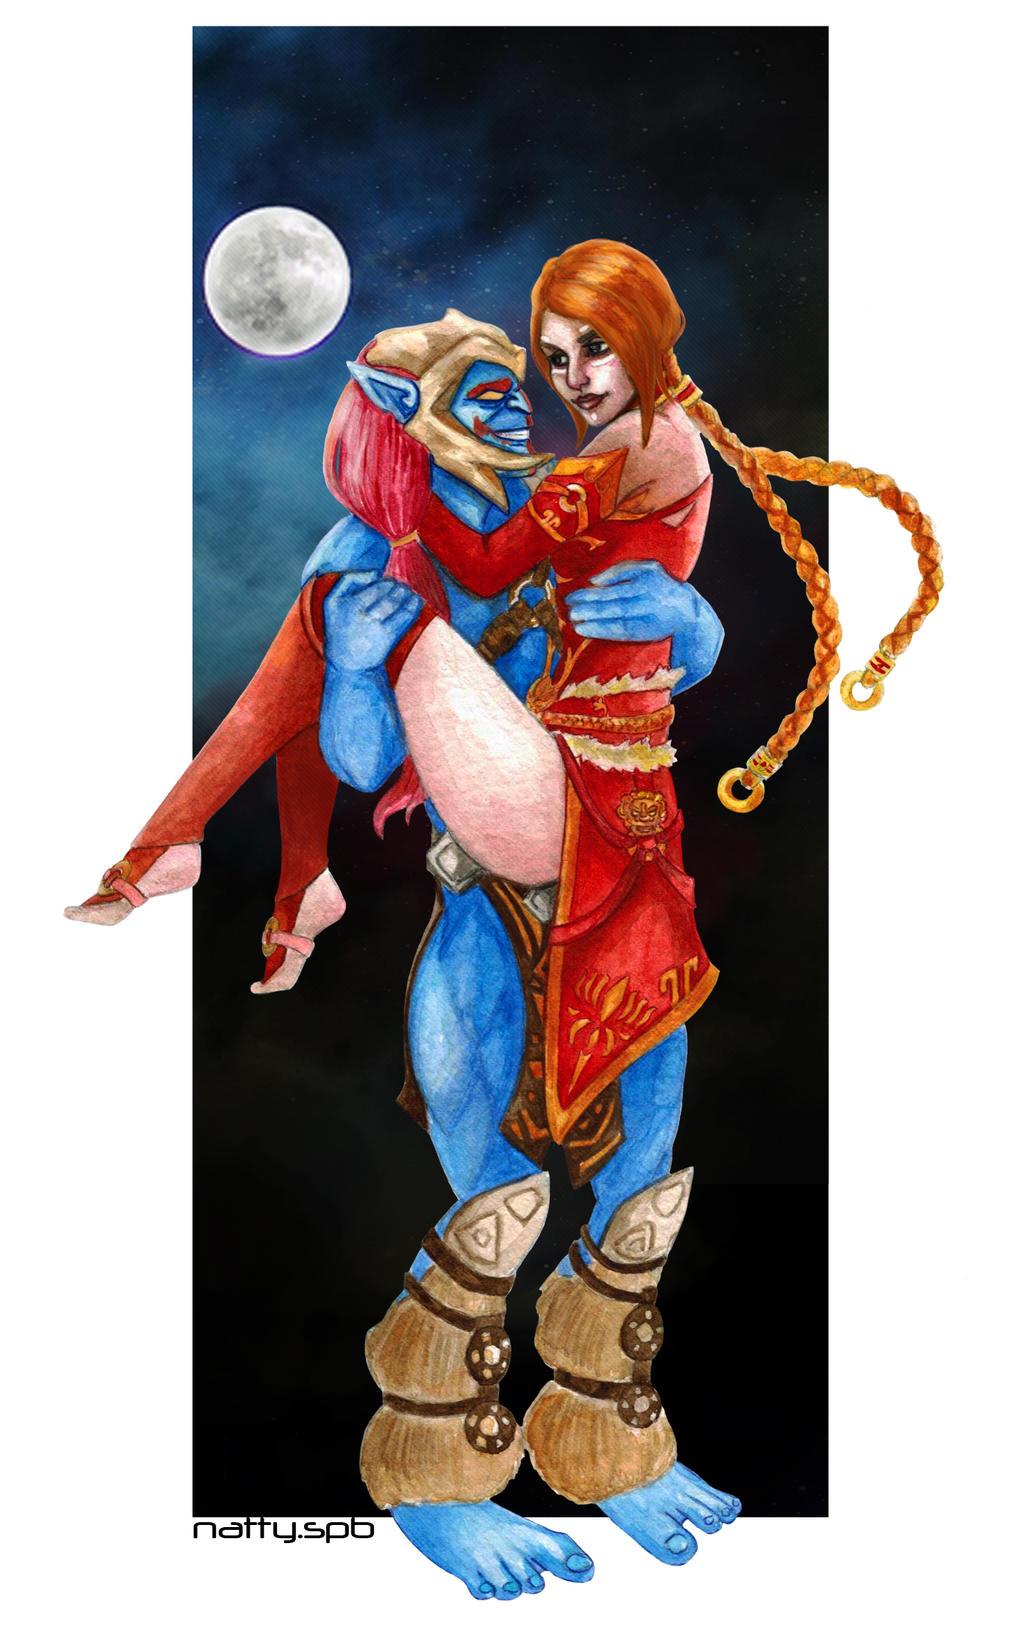 lina and huskar dota 2 by nattyspb on deviantart